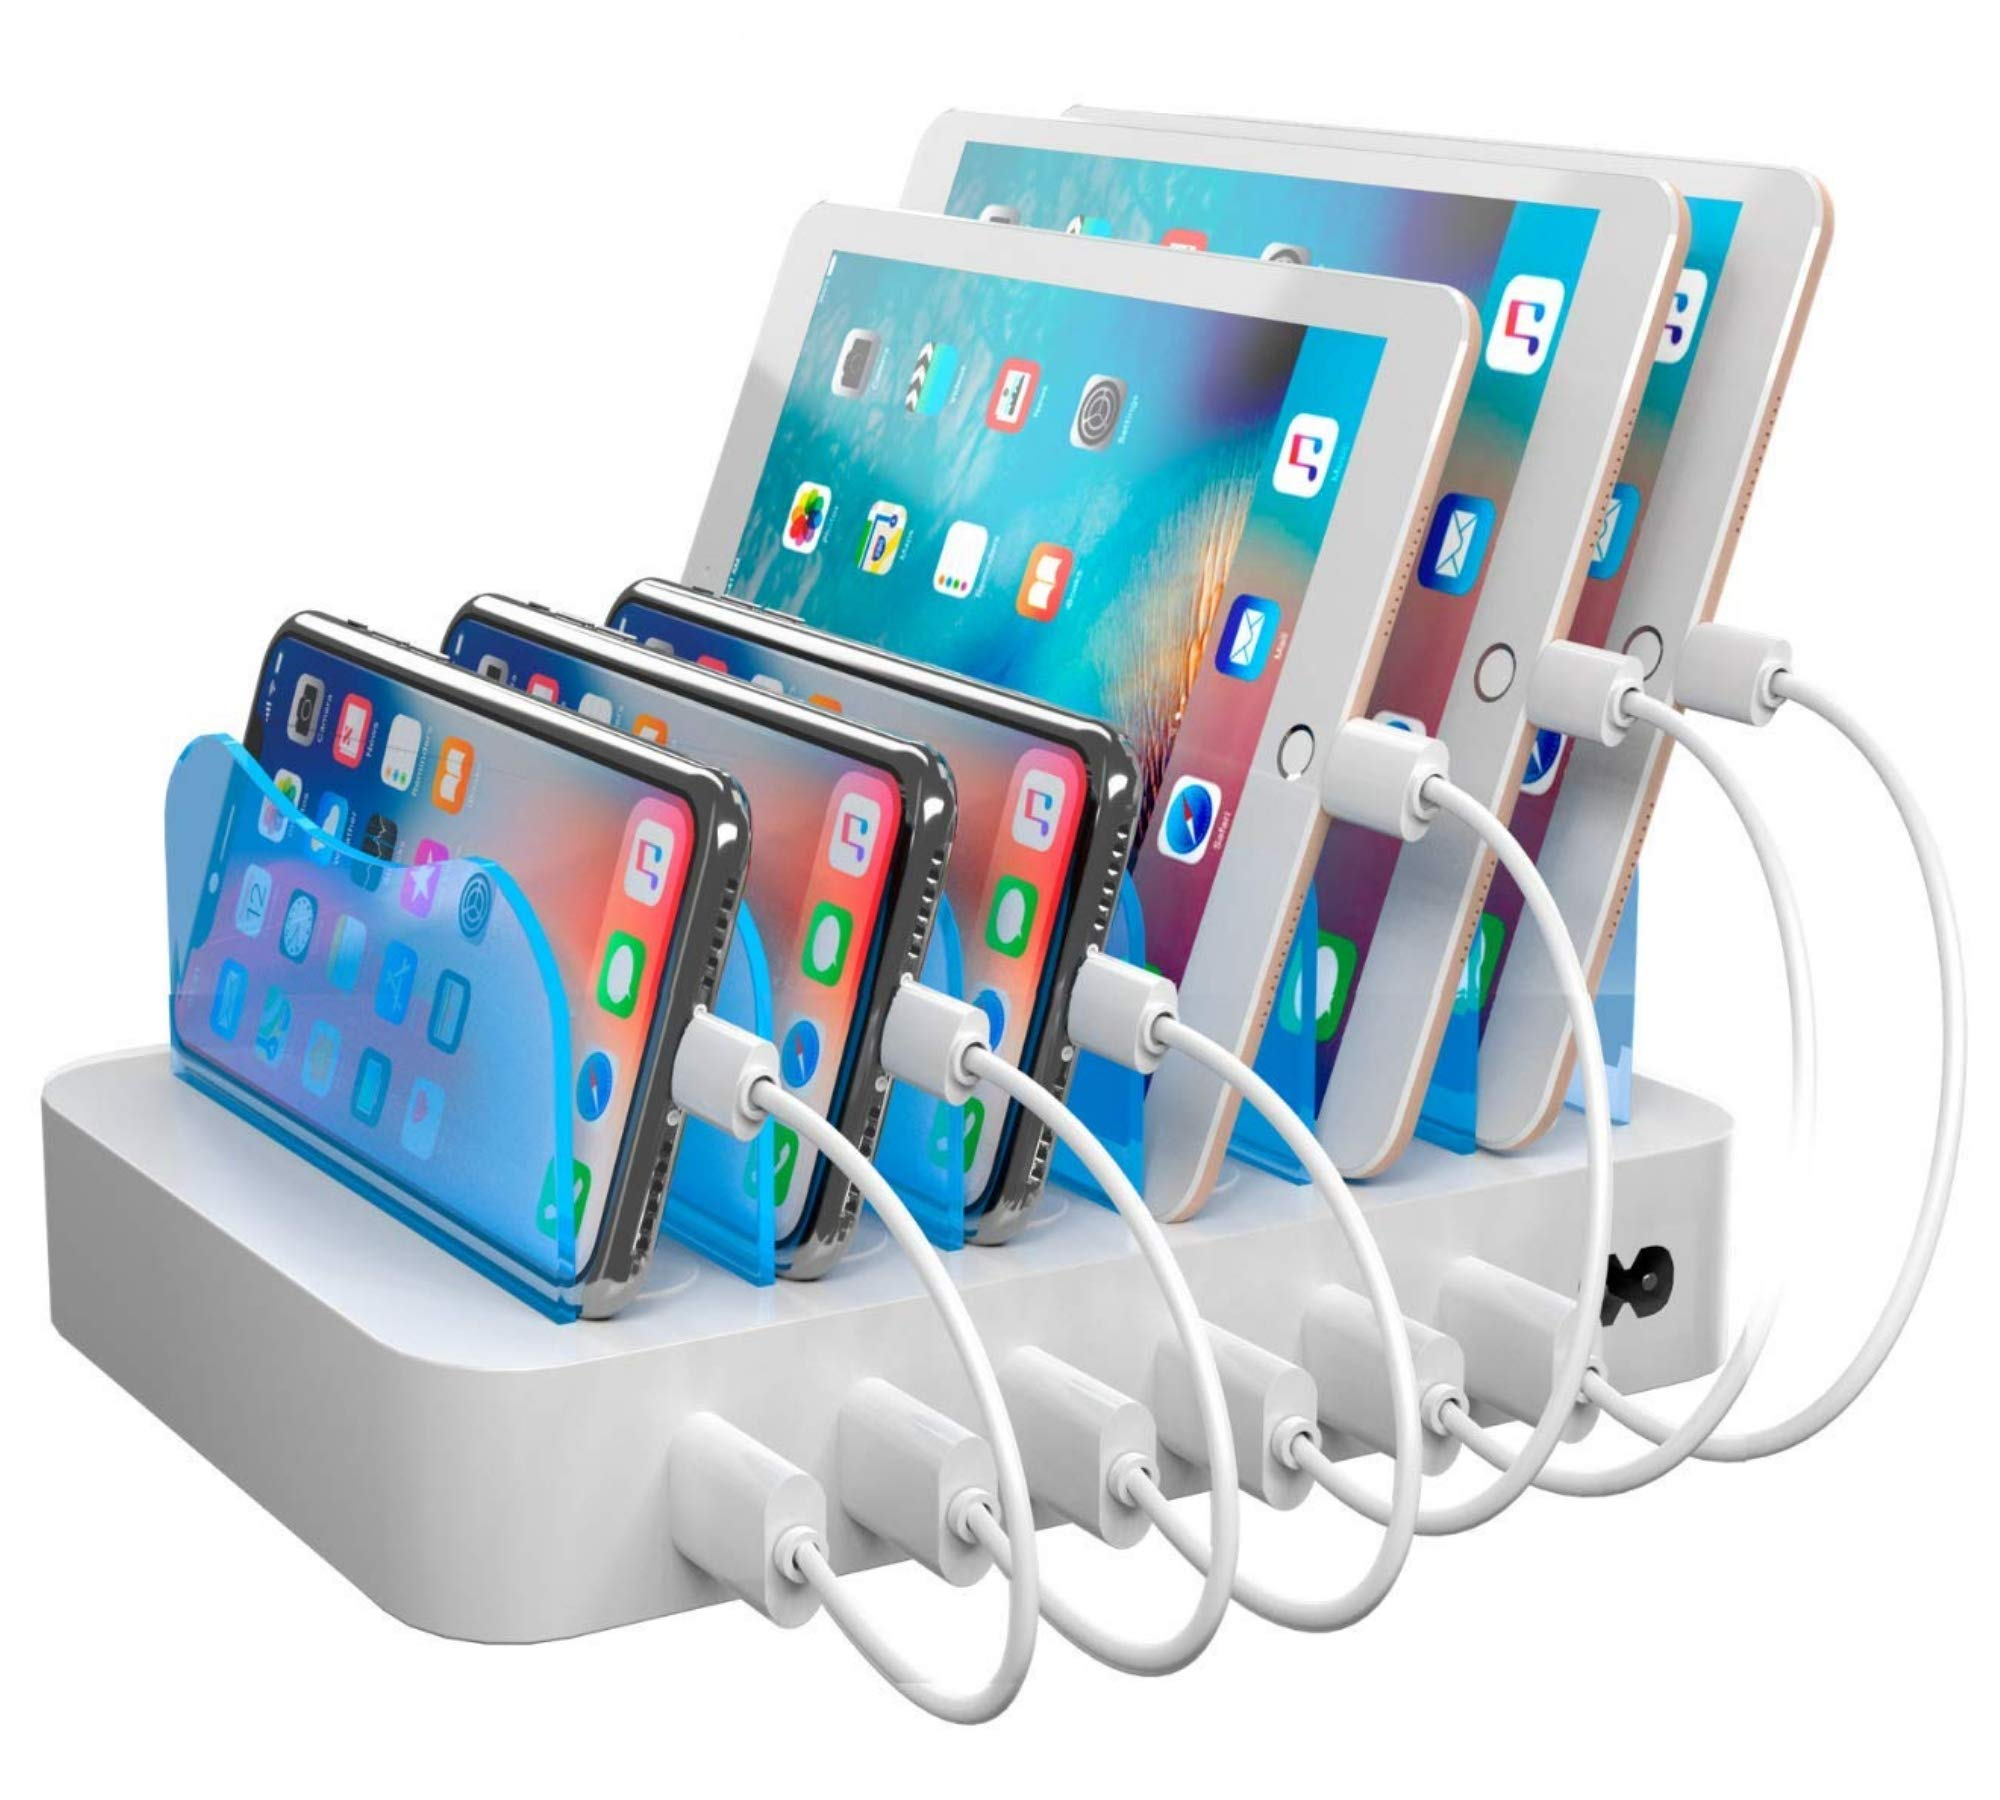 Hercules Tuff White Multiple USB Charger Station 2-in-1 - Short Cables Included for lphone, lpad, Tablets - 50W 10A - Rare White Color Charging Station by Hercules Tuff